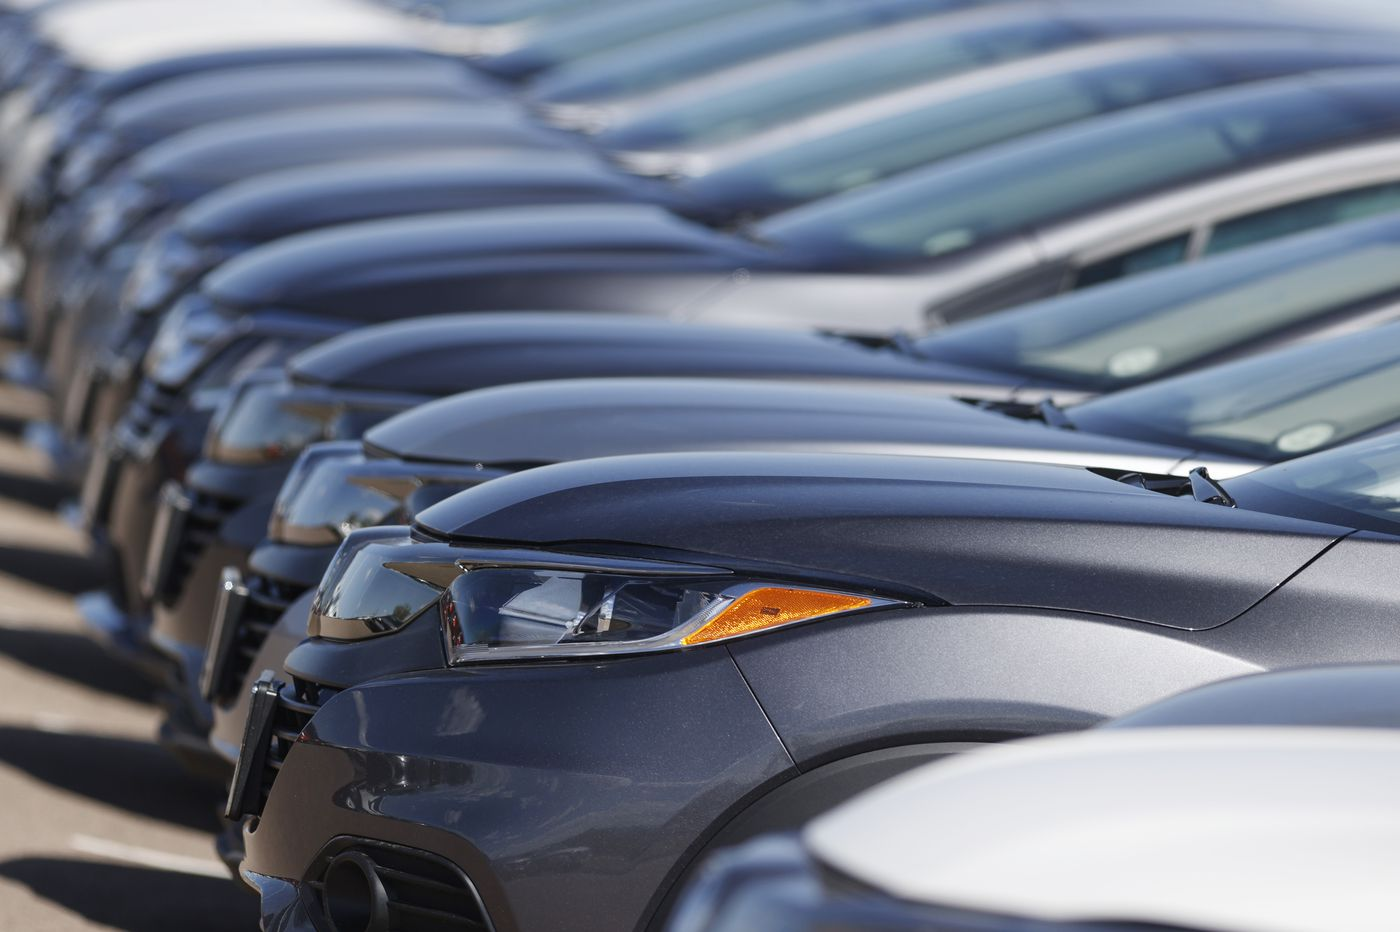 The pandemic has driven the average age of cars in the U.S. to a record high